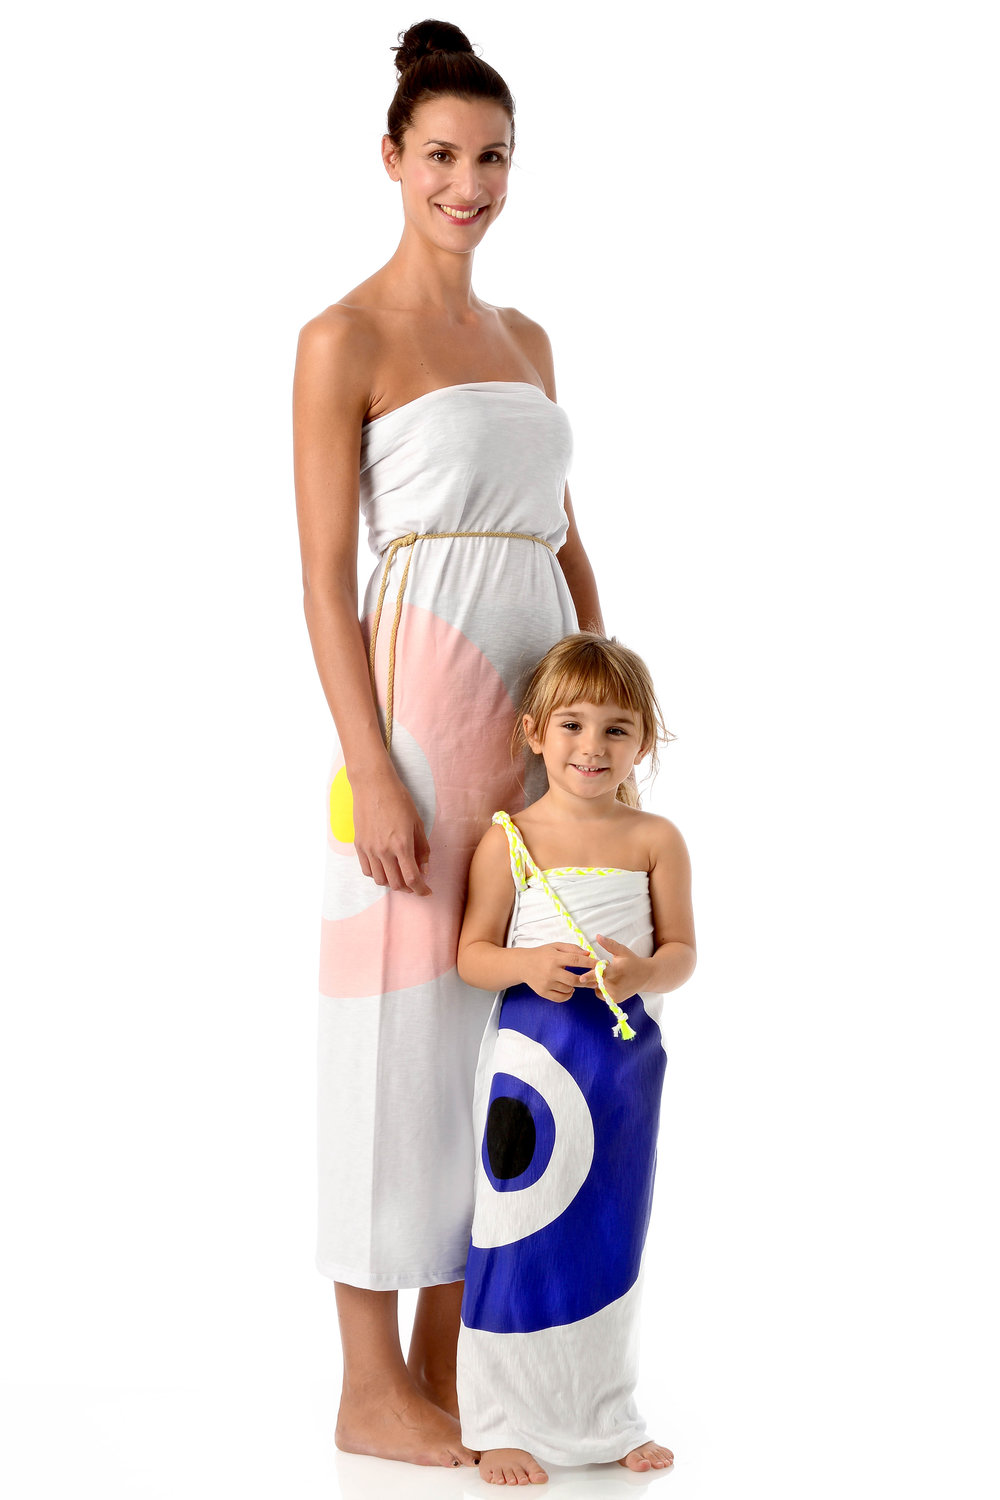 evile-eye-matching-style-mother-daughter-dresses.jpg